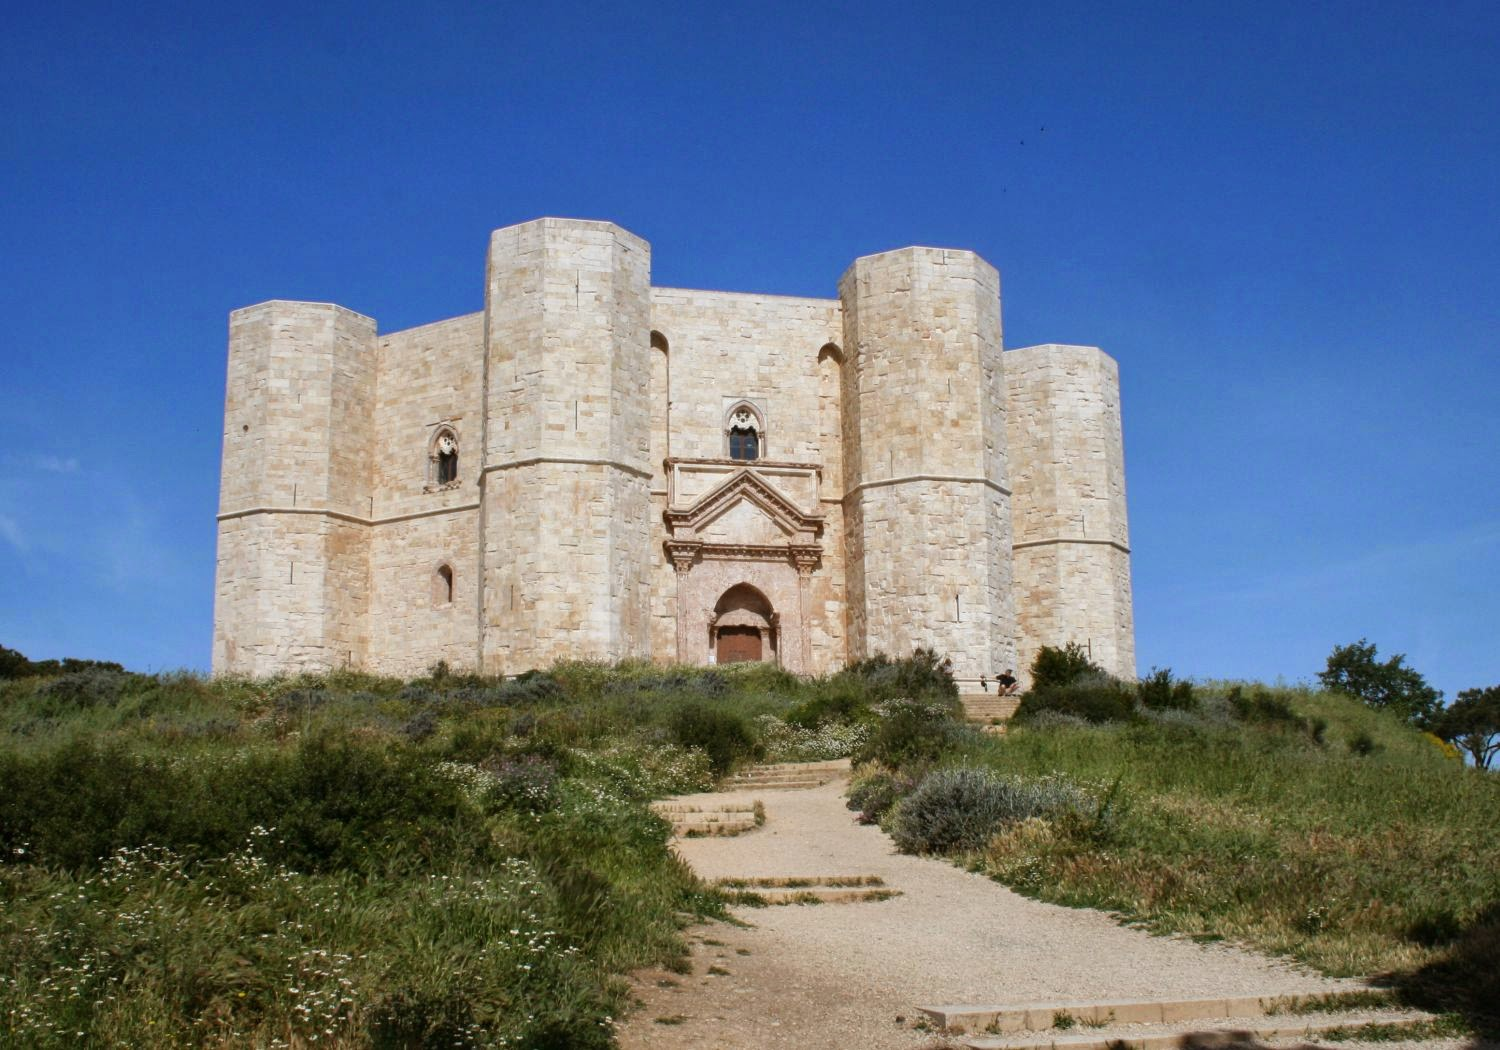 Castel del Monte is a fortress located close to Andria